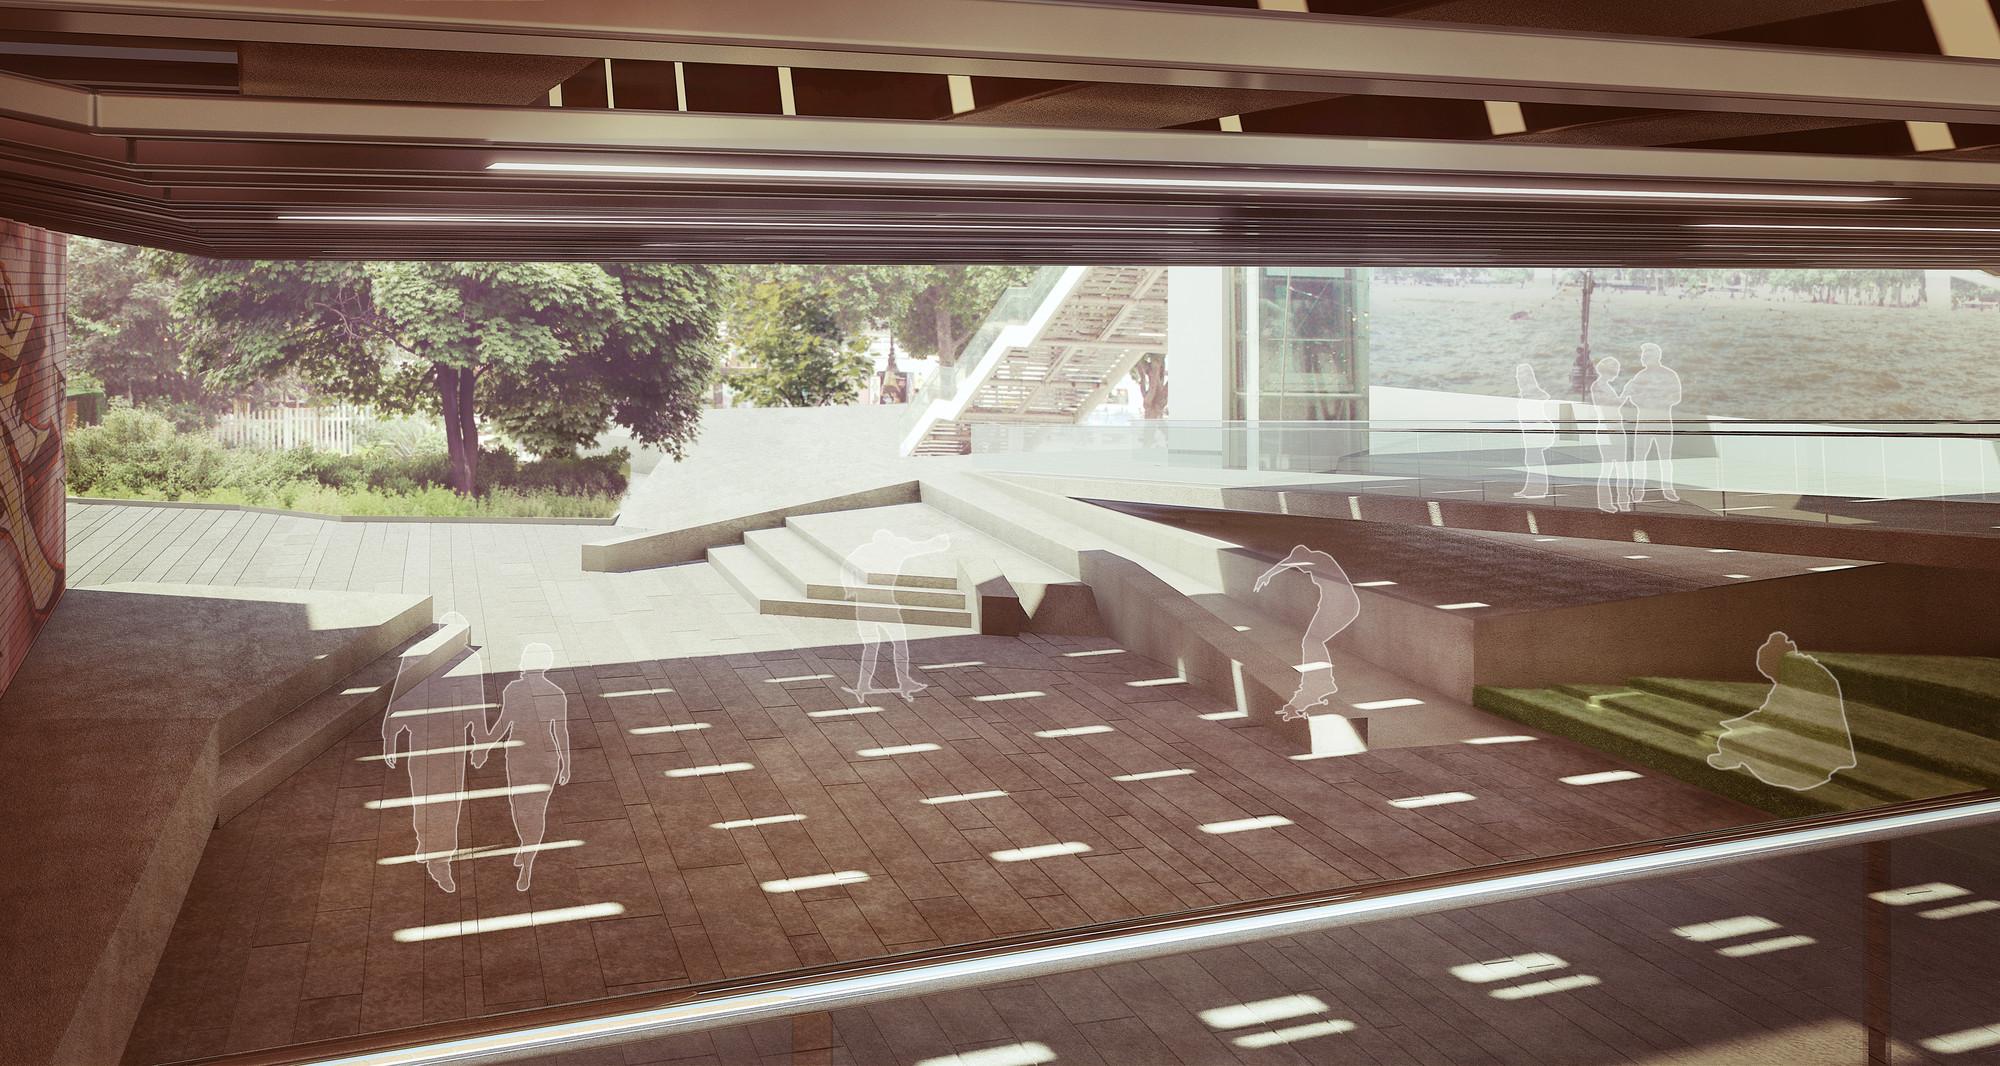 Design option for new skateable space at Southbank Centre by Rich Architecture. Image Courtesy of The Southbank Centre